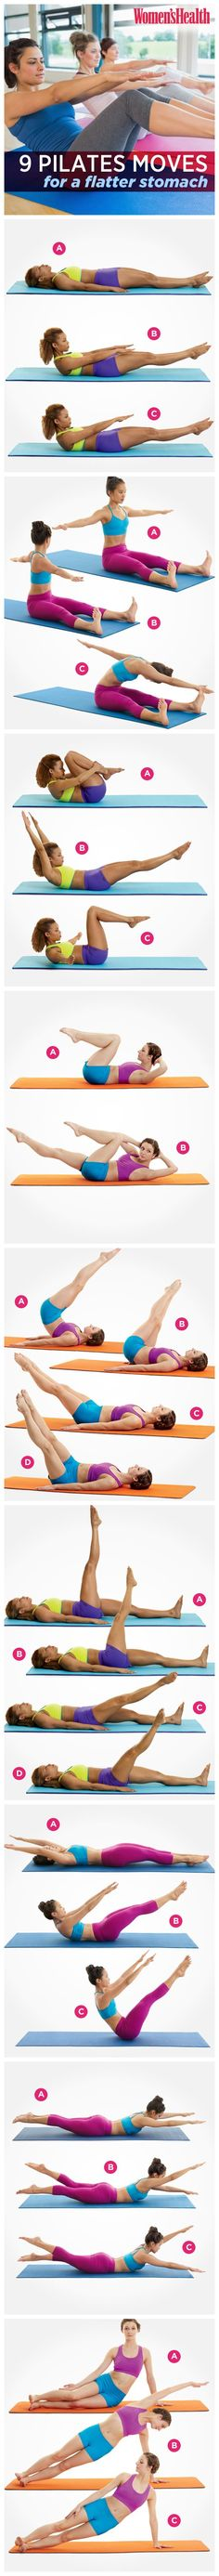 9 Flat Belly Pilates